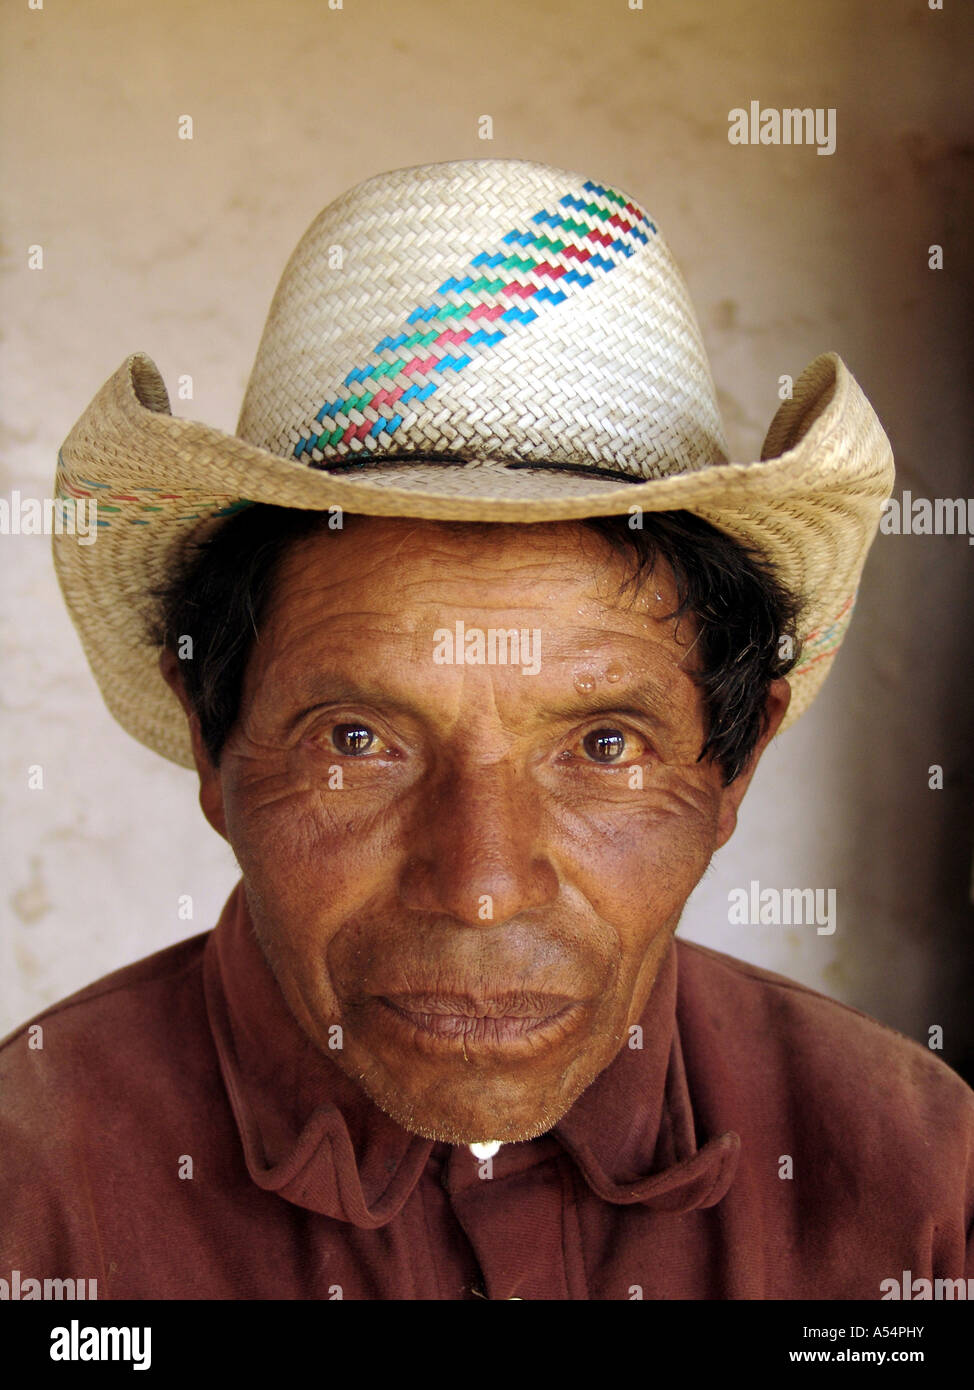 Painet ip1807 honduras old man marcala country developing nation less  economically developed culture emerging market 1340b524979